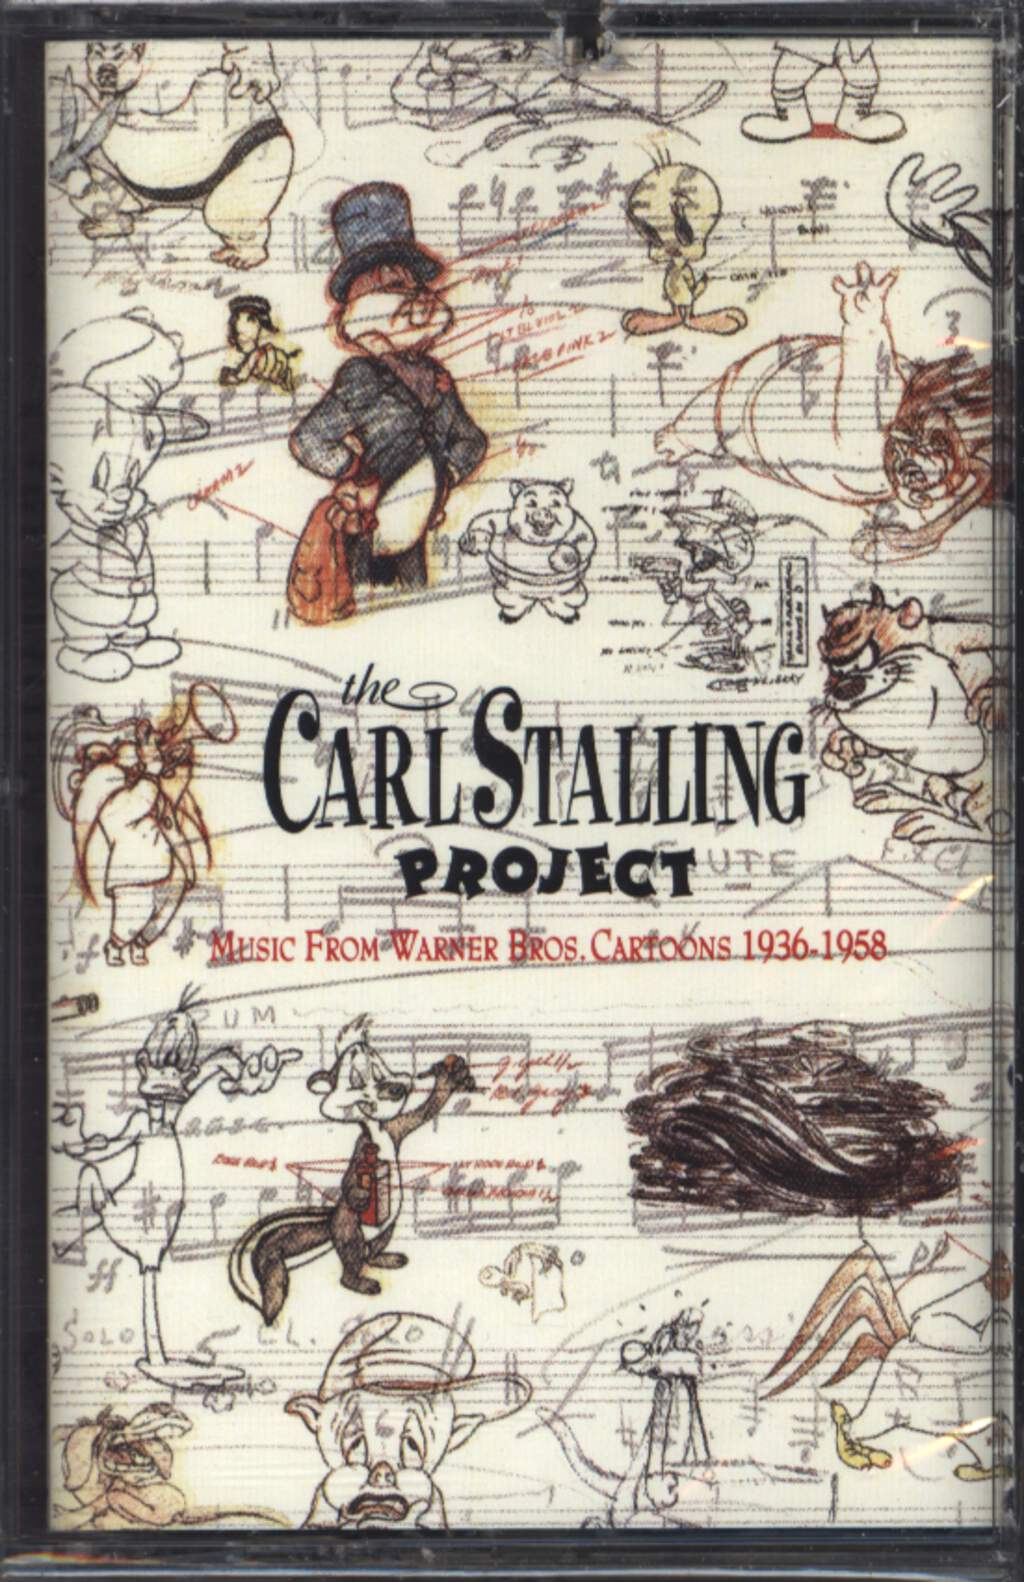 Carl Stalling: The Carl Stalling Project, Compact Cassette